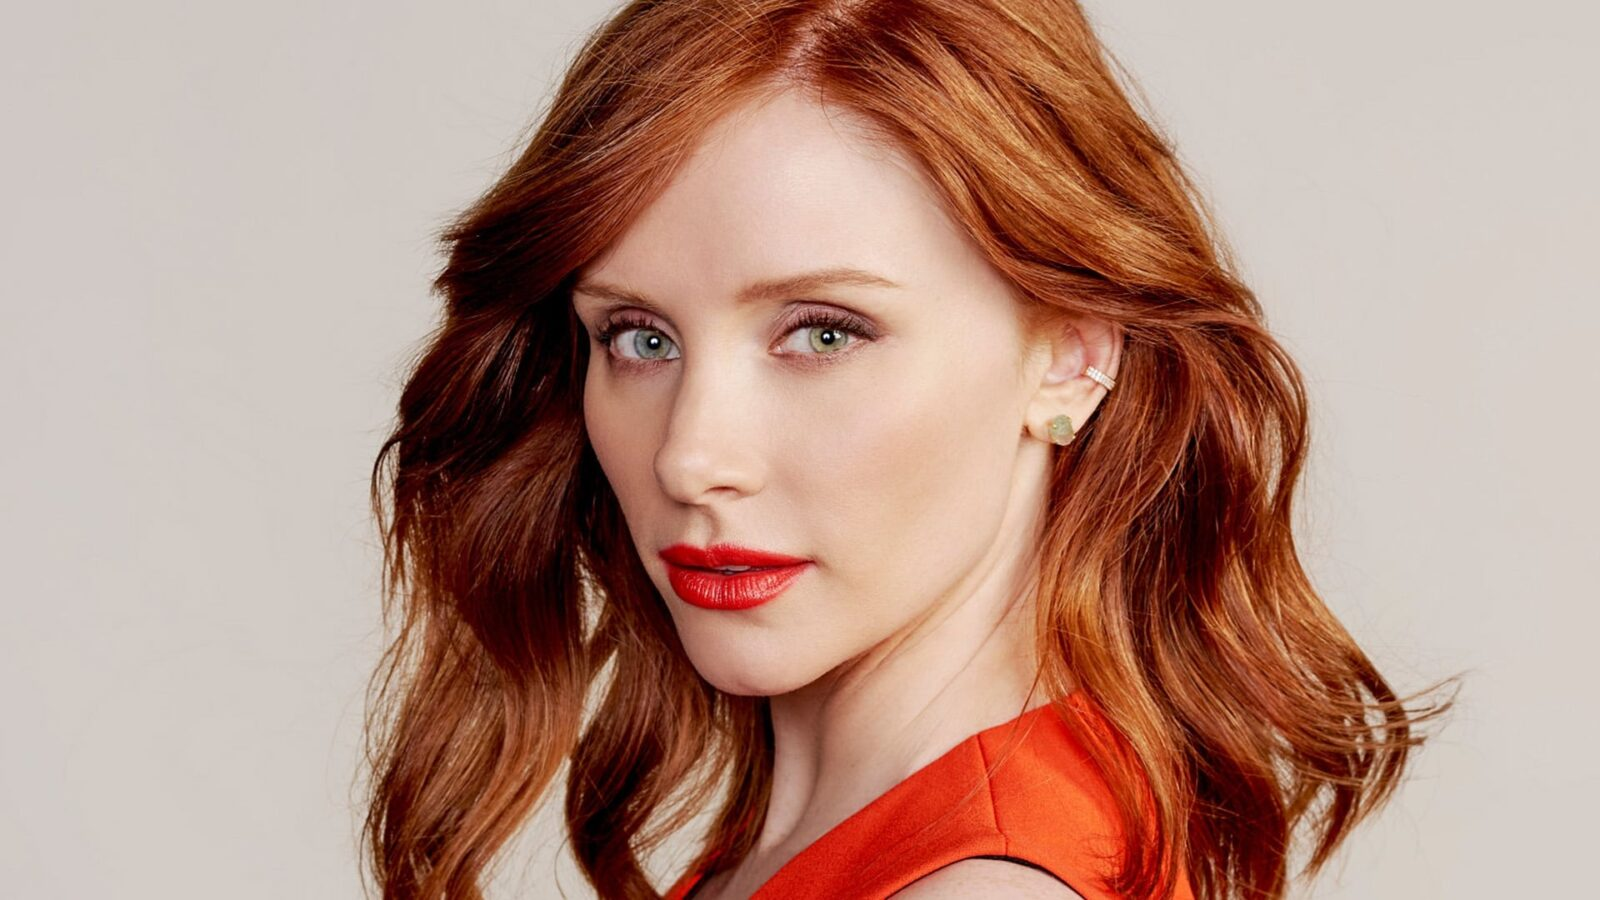 Amazing Bryce Dallas Howard picture